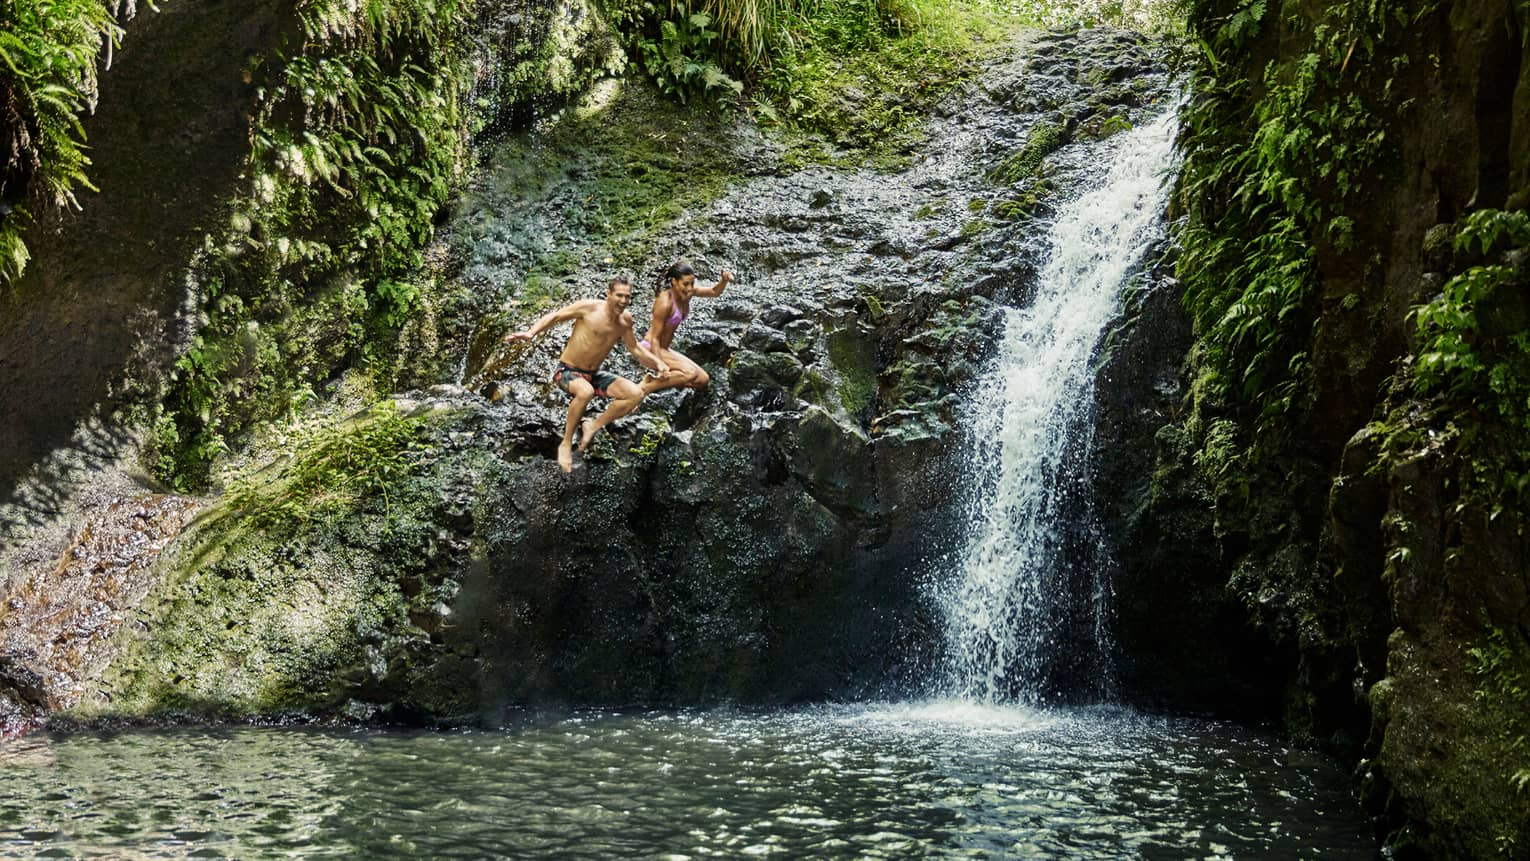 Man and woman laugh, hold hands as they jump from rocks next to waterfall